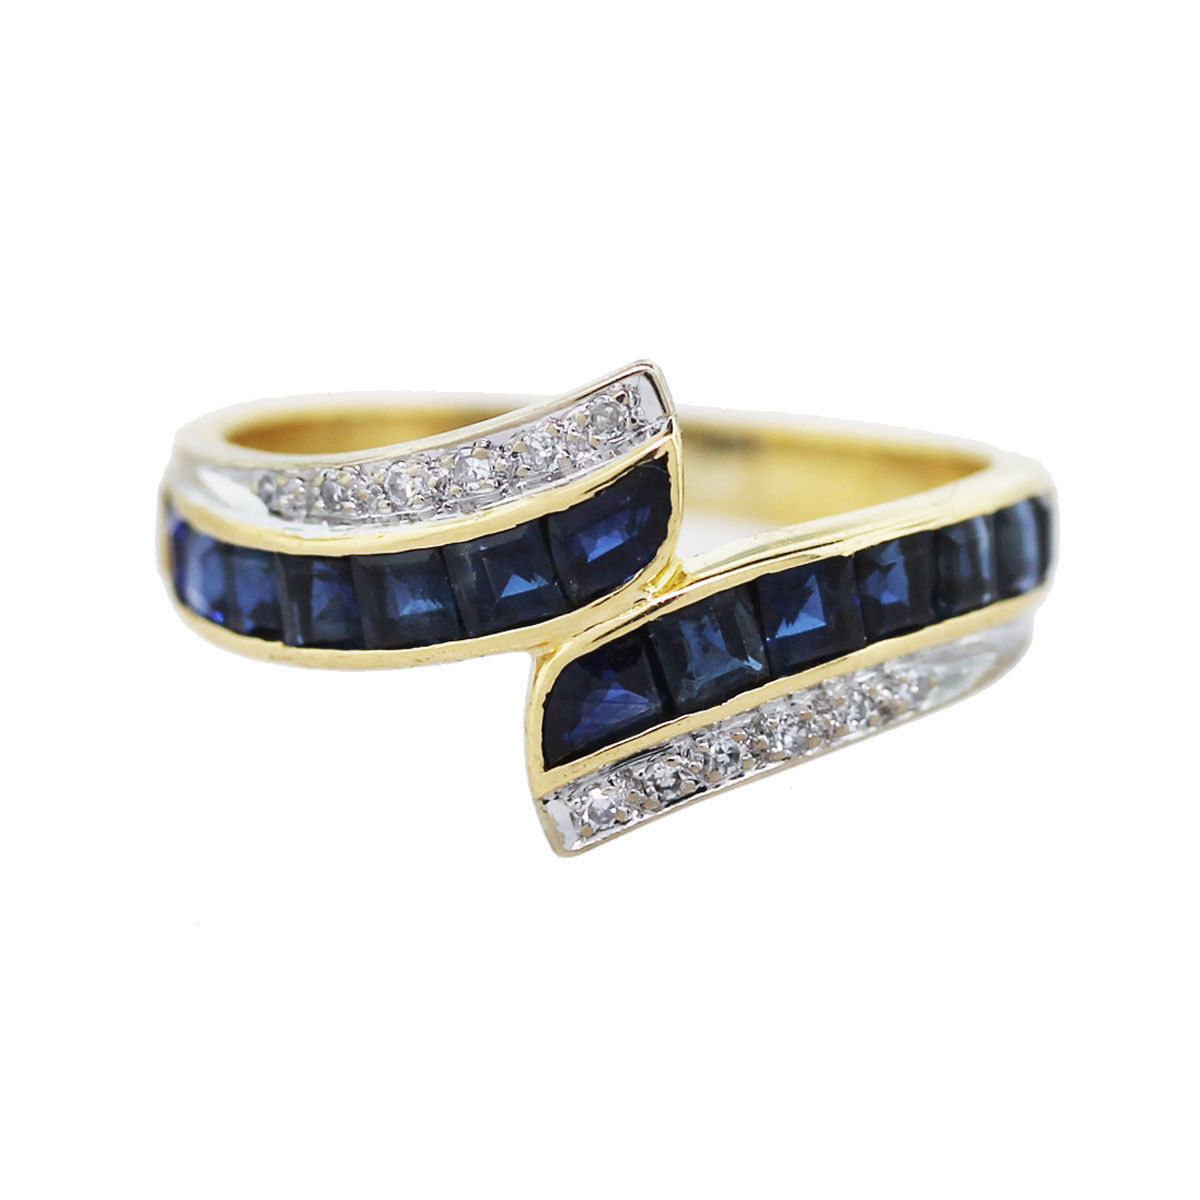 You are viewing this 18k Yellow Gold, Diamond and Sapphire Bypass Ring!